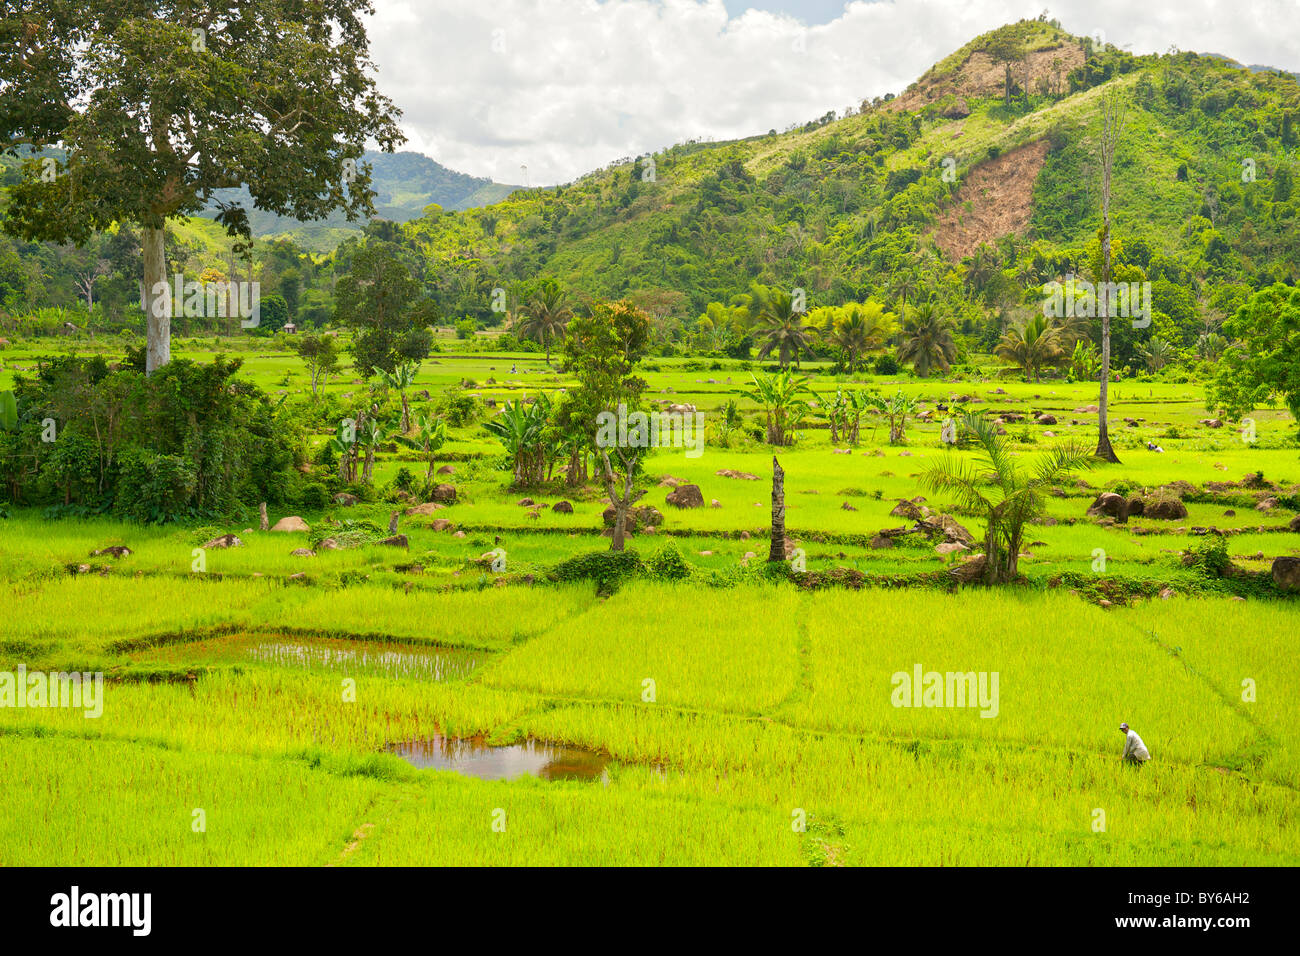 View of the lush landscape and verdant rice paddy plantations bordering the Marojejy National Park in northeast - Stock Image